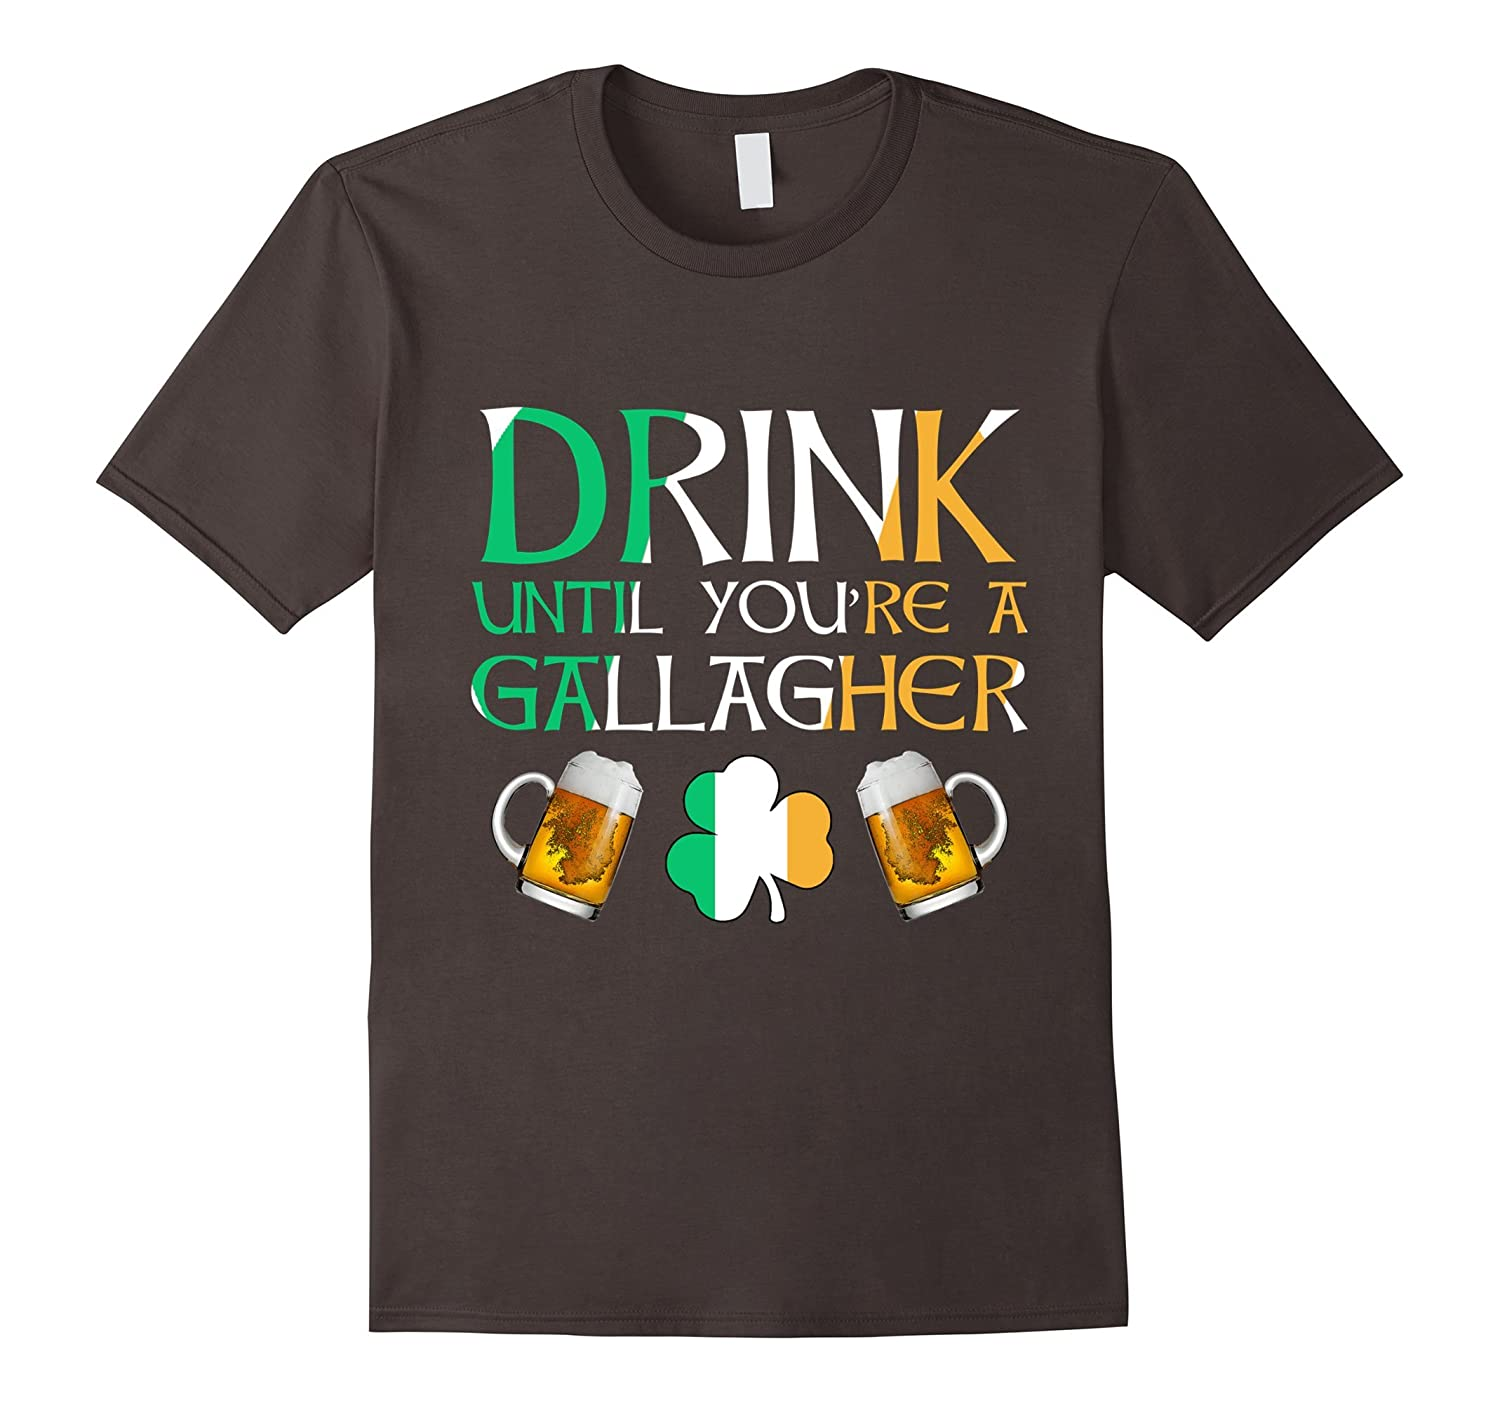 Drink Until Youre A Gallagher T Shirt - St Patricks Day-TD